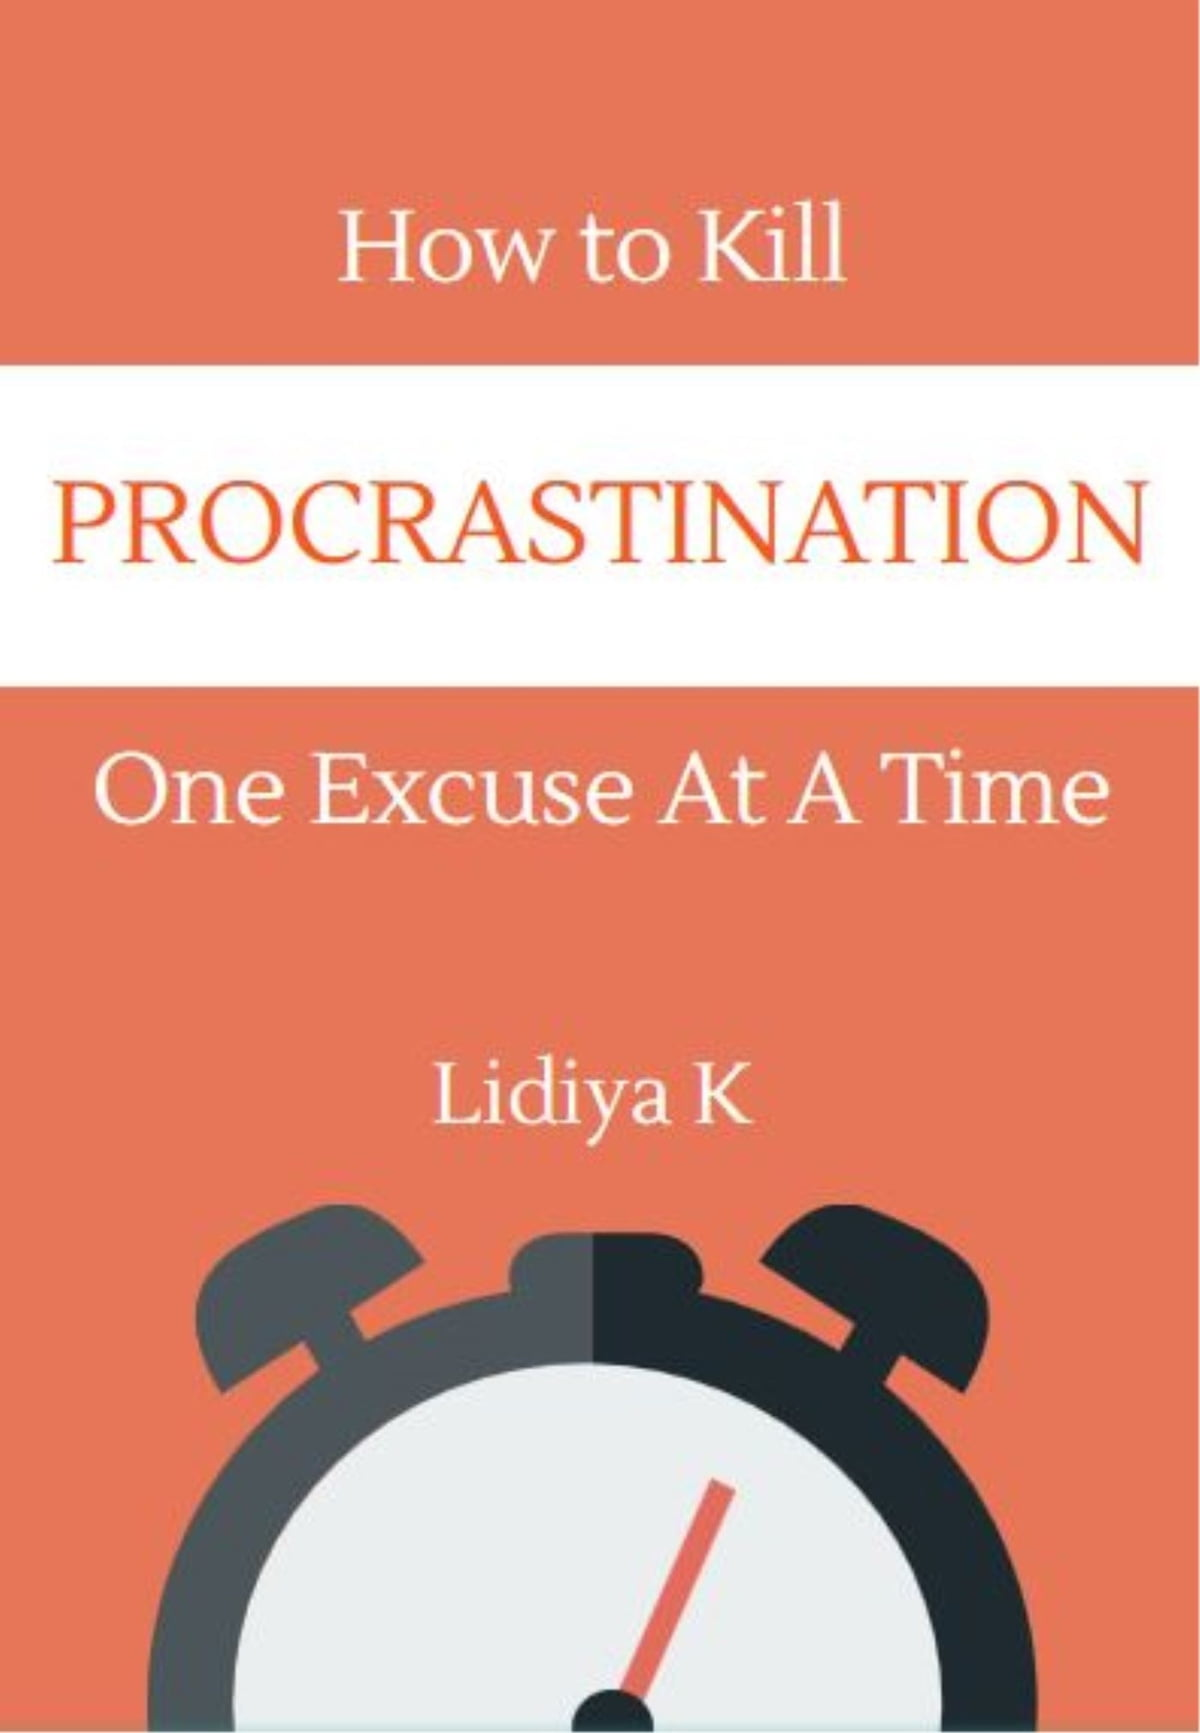 How to Kill Procrastination One Excuse at a Time eBook by Lidiya K -  9781310708244 | Rakuten Kobo